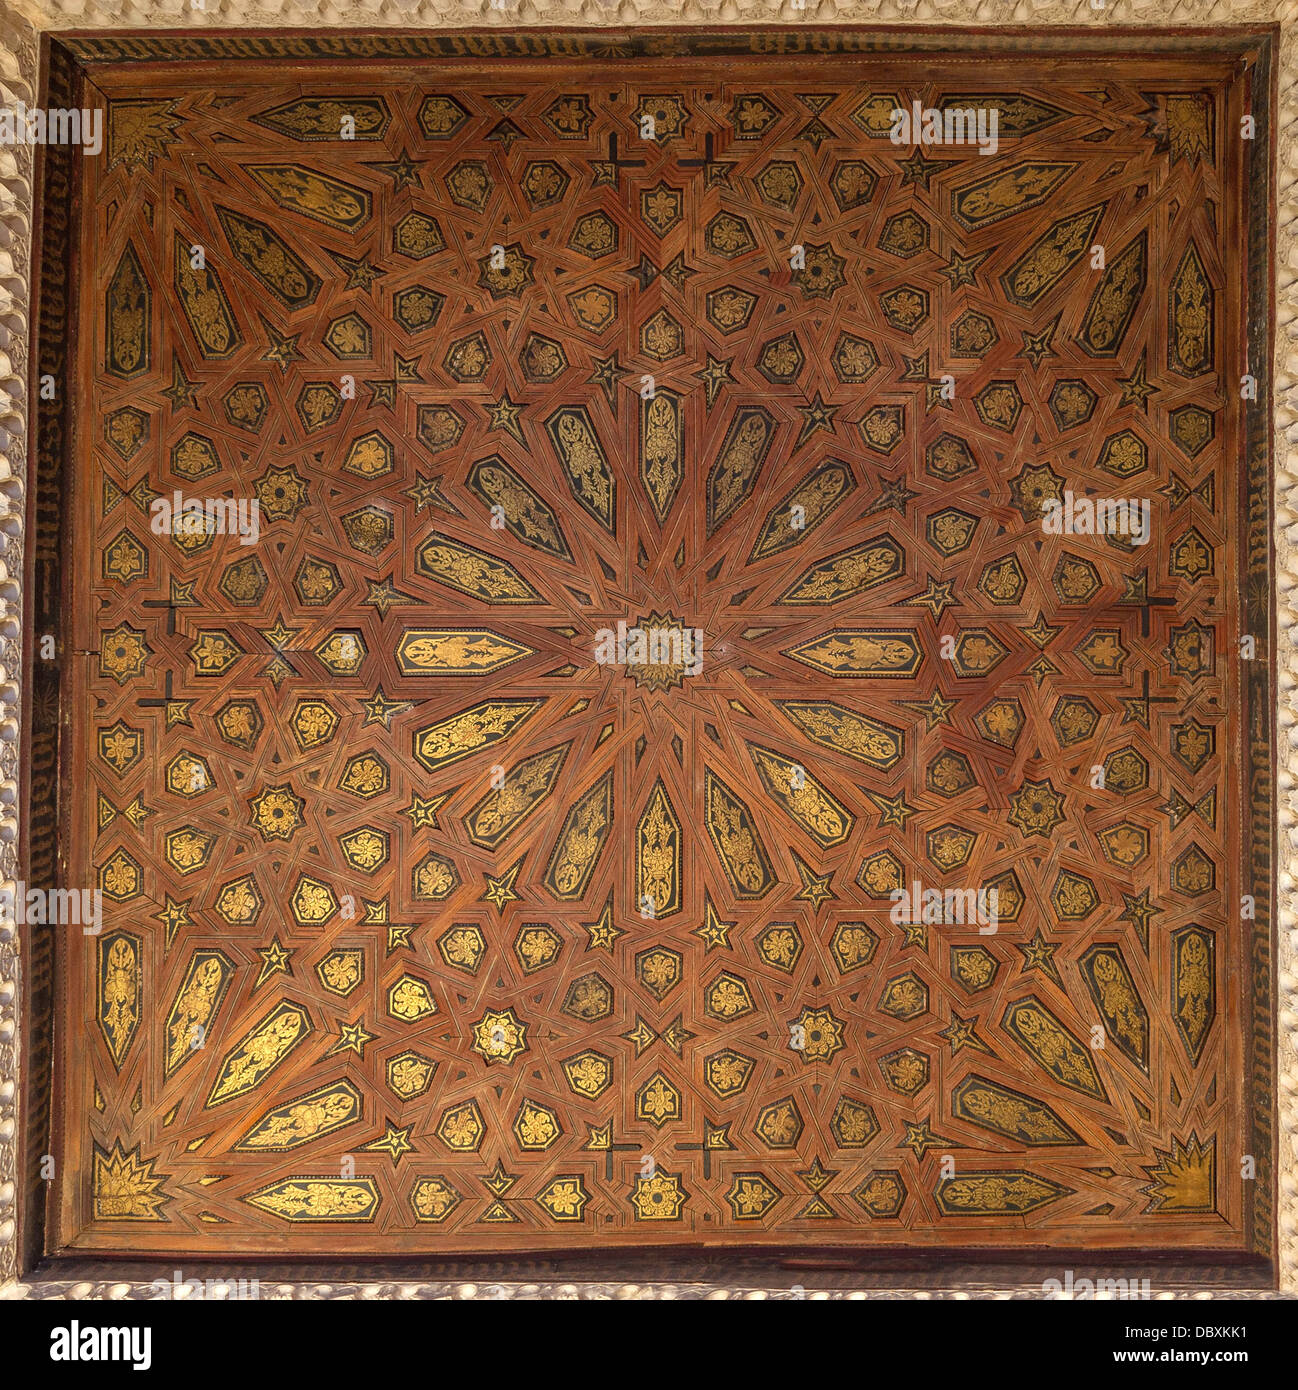 a wooden ceiling with marquetry, Alhambra, Granada, Spain. Stock Photo